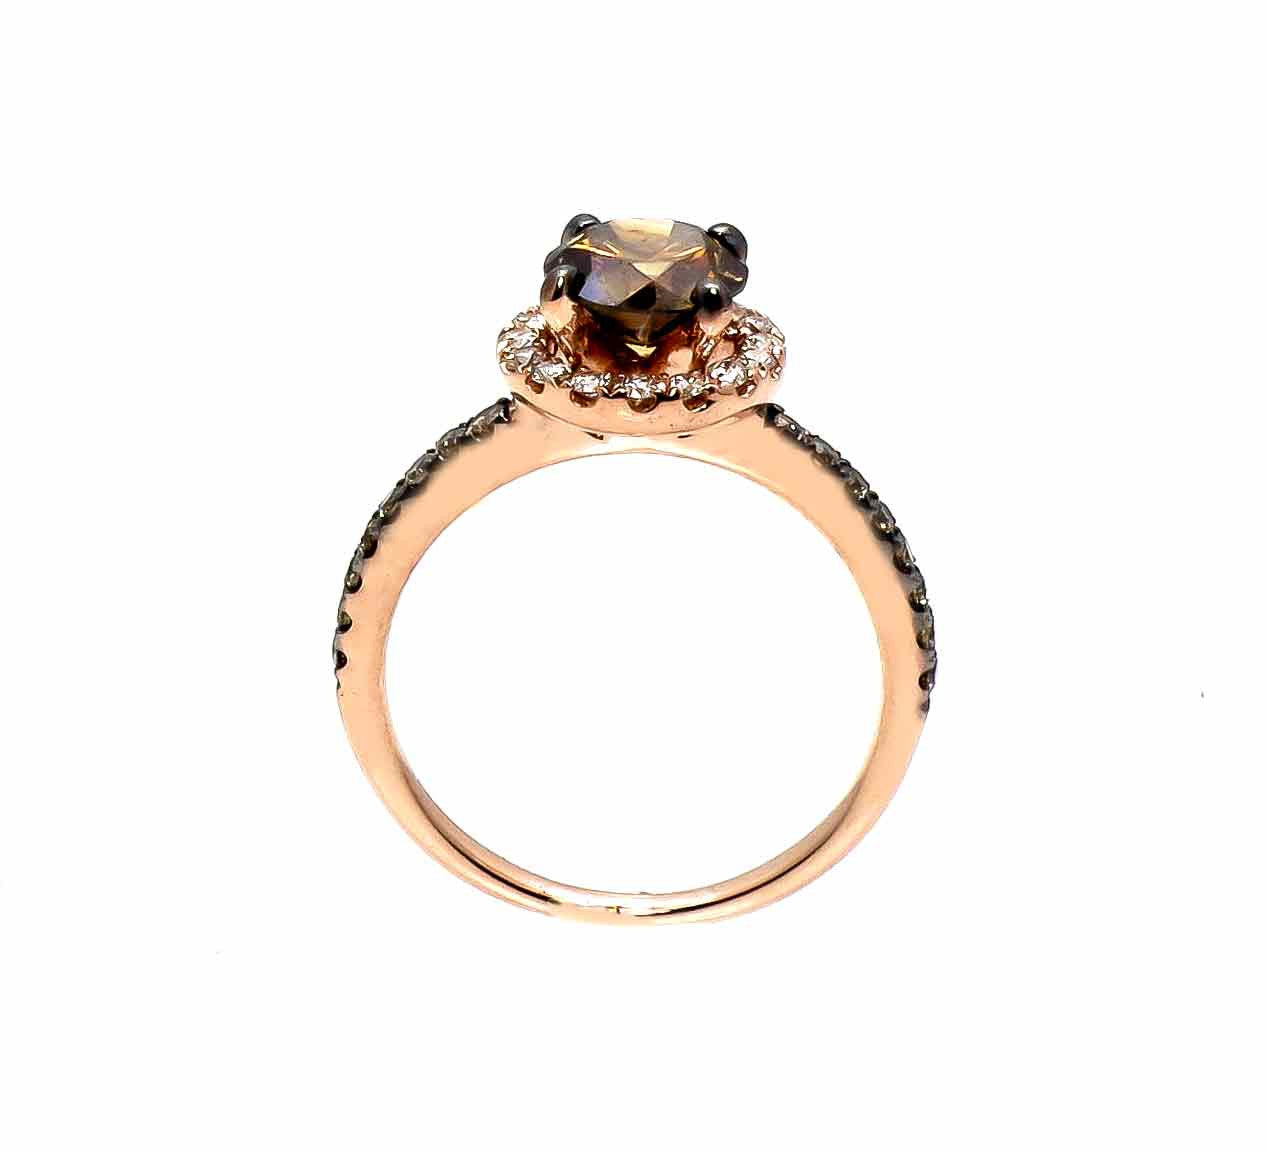 1 Carat Chocolate Brown Diamond Halo, White Diamond Accent Stones, Rose Gold, Engagement Ring, Anniversary Ring - BD94639A